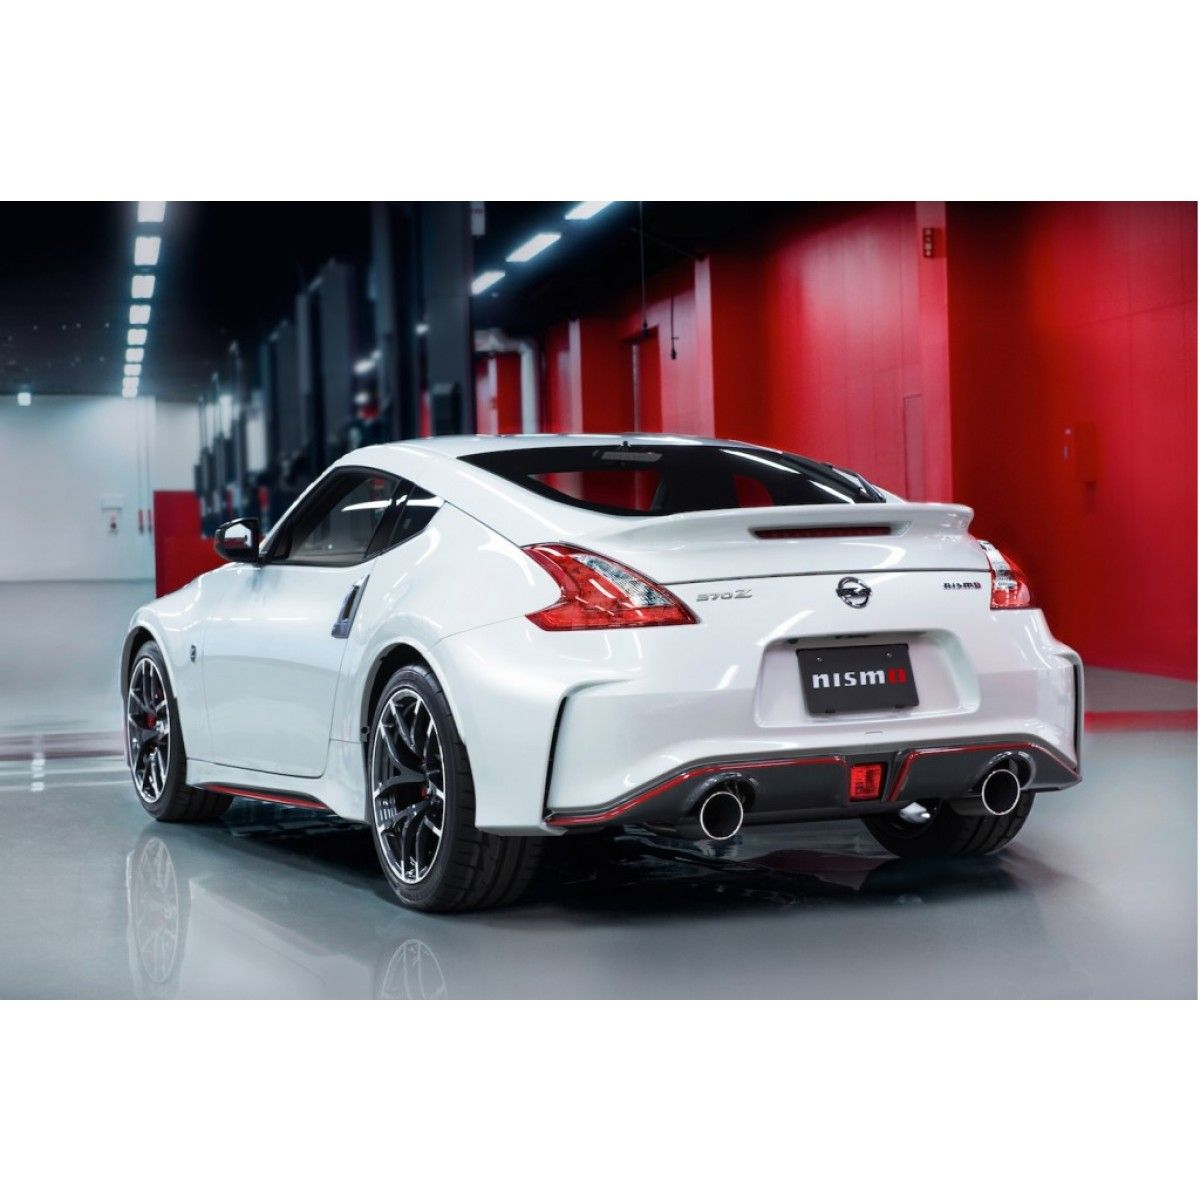 440.20 2015 NISMO Rear Bumper For Nissan 370z Http://www